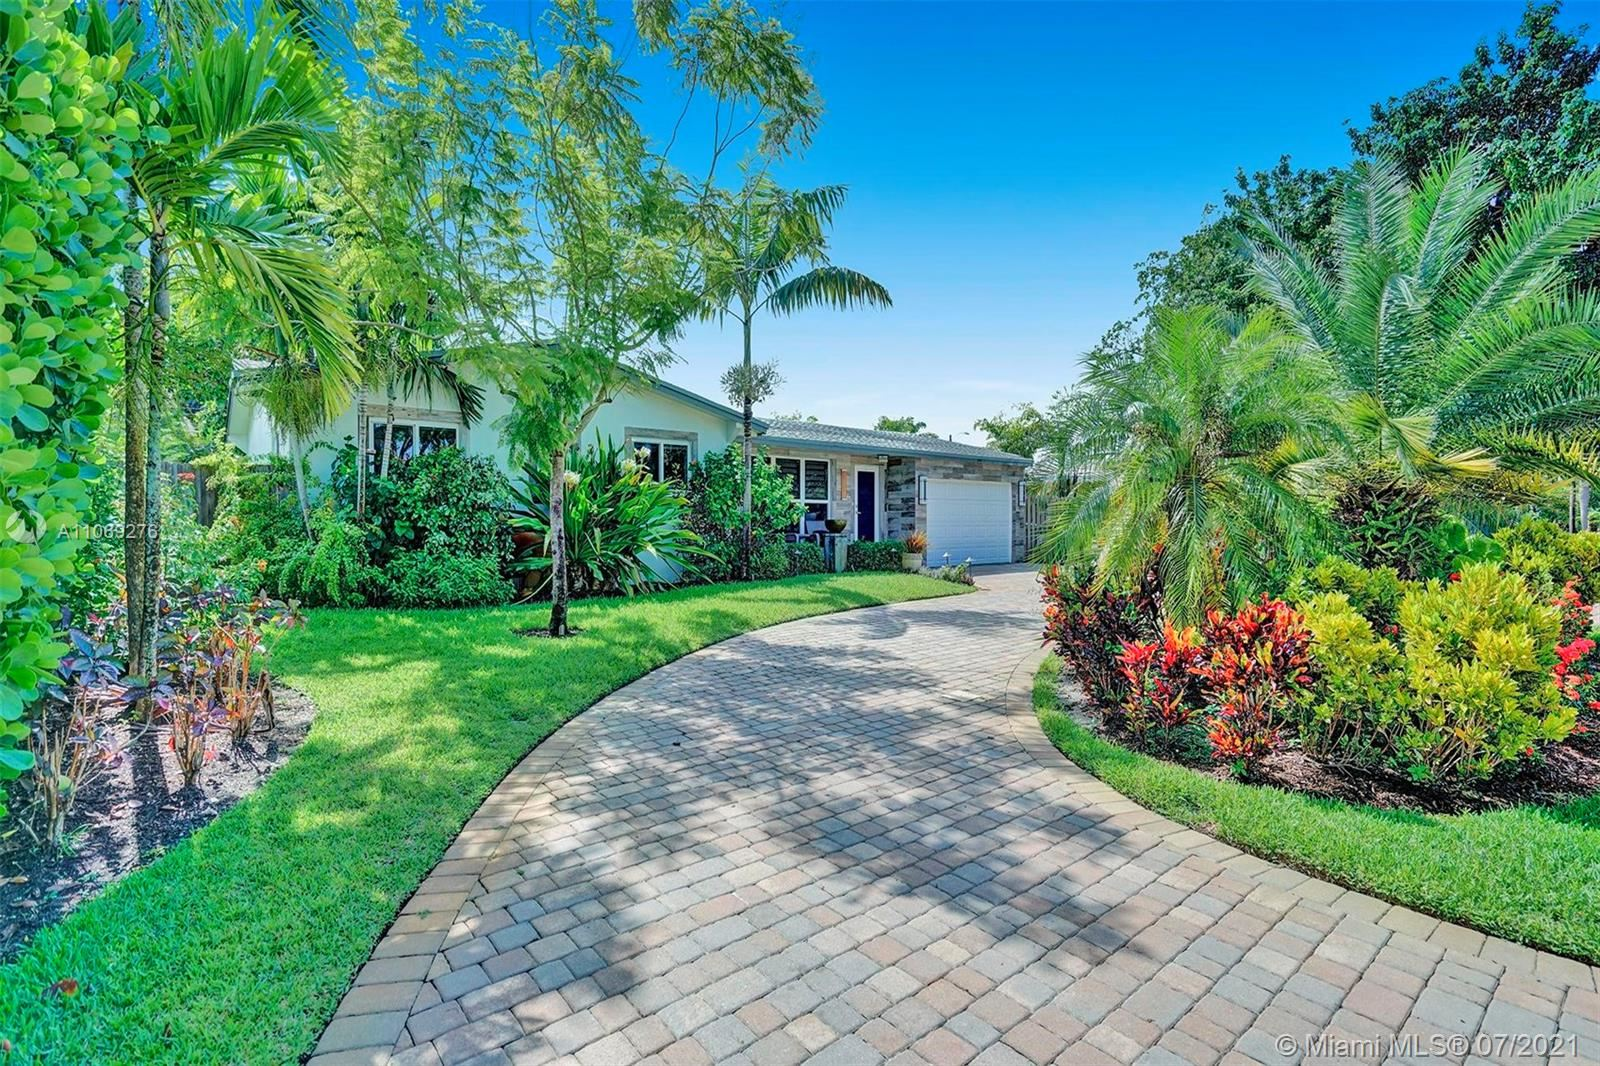 Photo of 2617 NW 6th Ave, Wilton Manors, FL 33311 (MLS # A11069276)